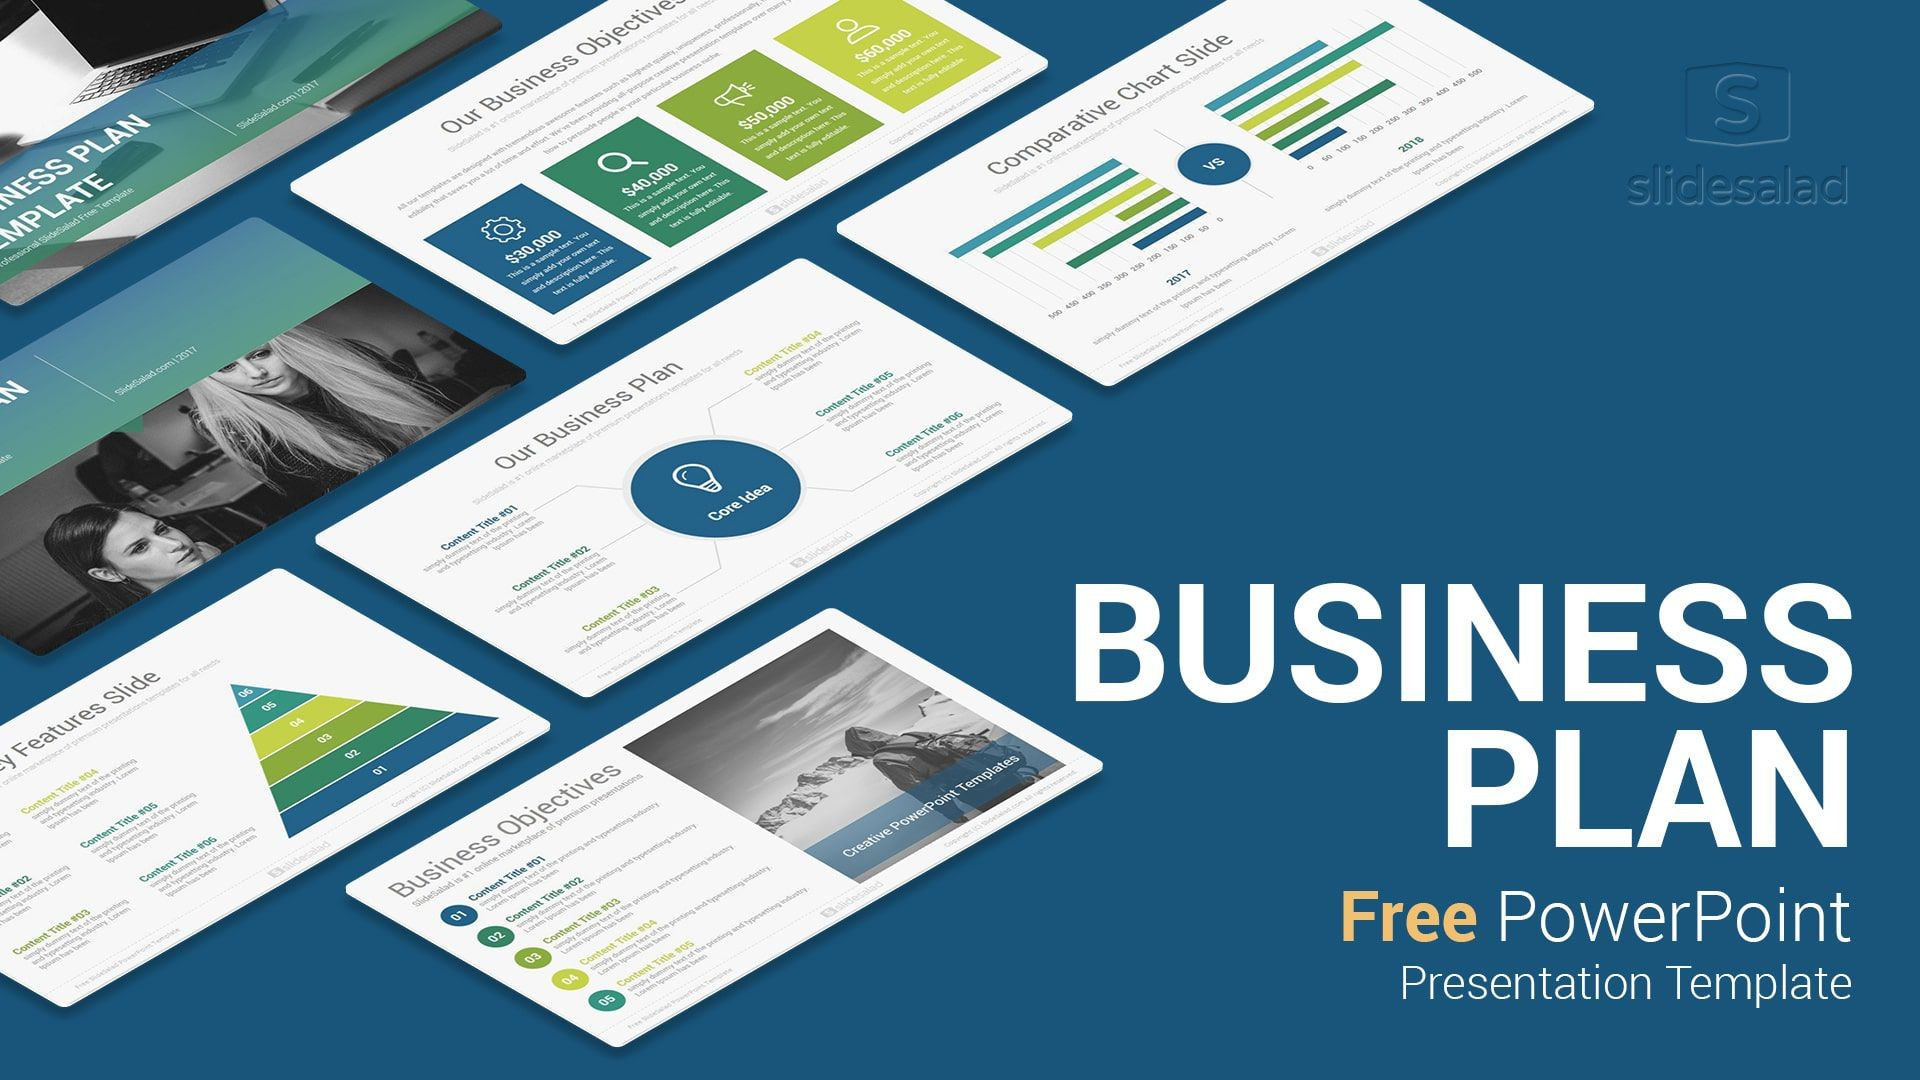 007 Sensational Free Download Ppt Template For Busines Sample  Presentation Plan1920